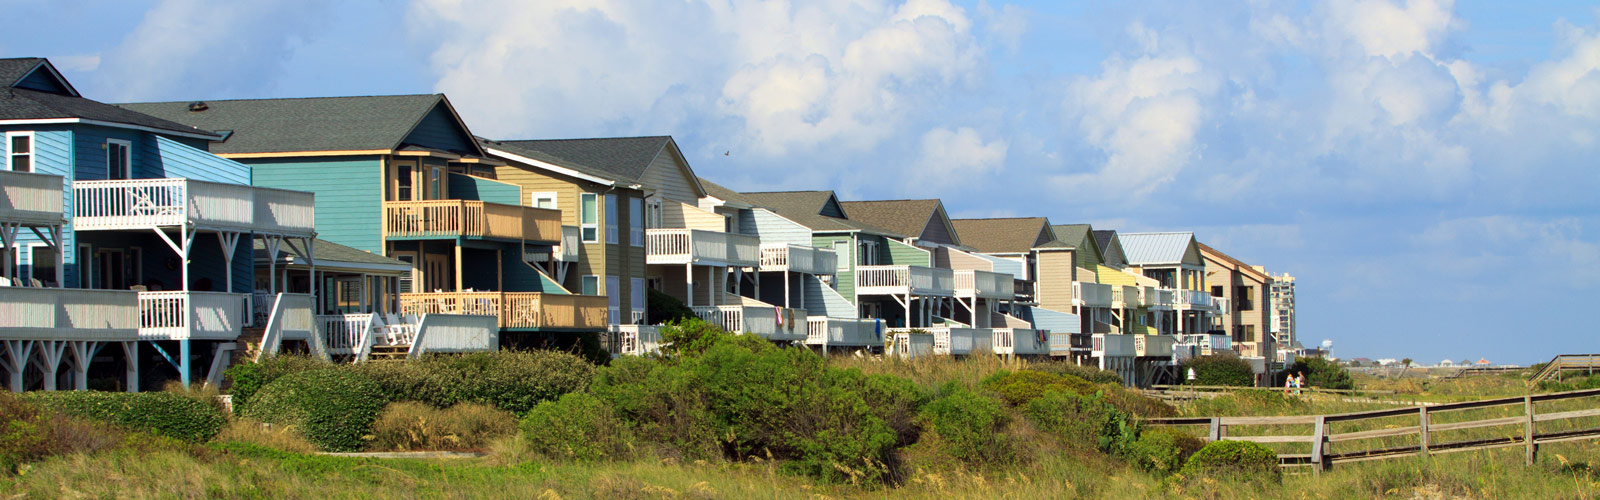 a row or beach homes